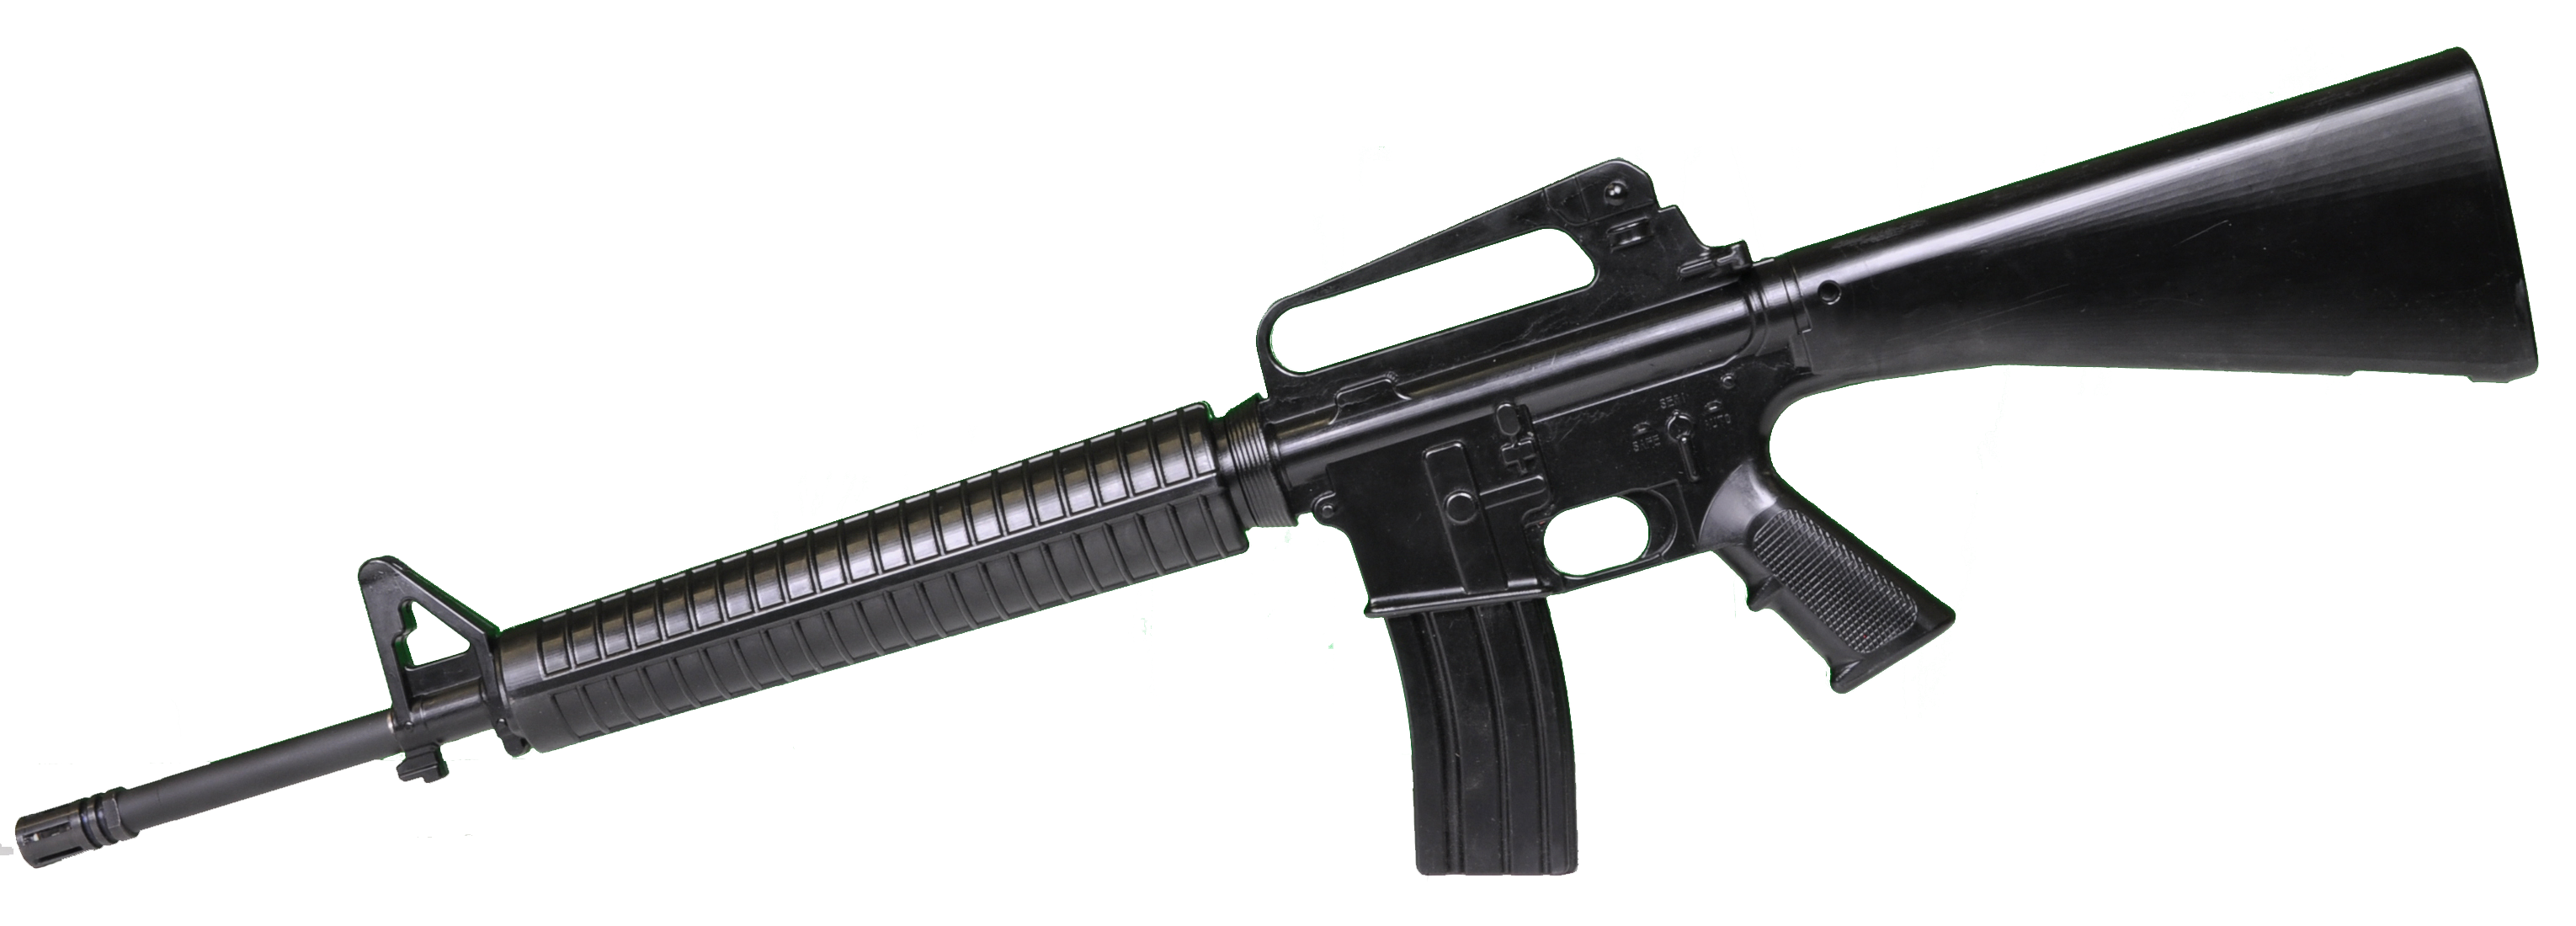 picture free download Army rifle clipart. Assault png images free.